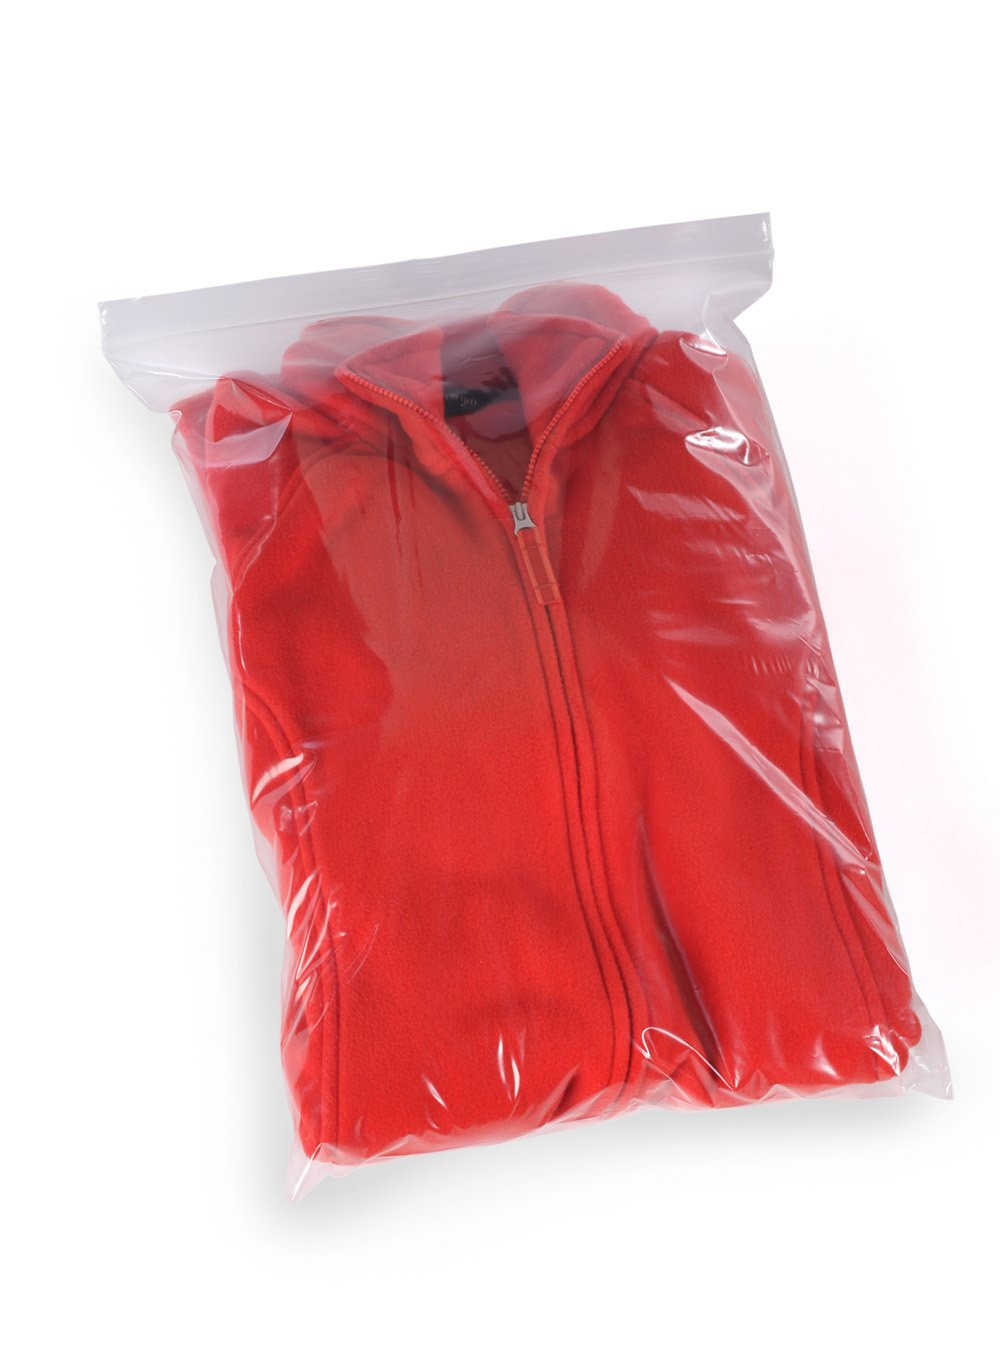 13'' x 15'' x 2 mil Clear Plastic Reclosable Bags with Zip Top (Case of 1,000)